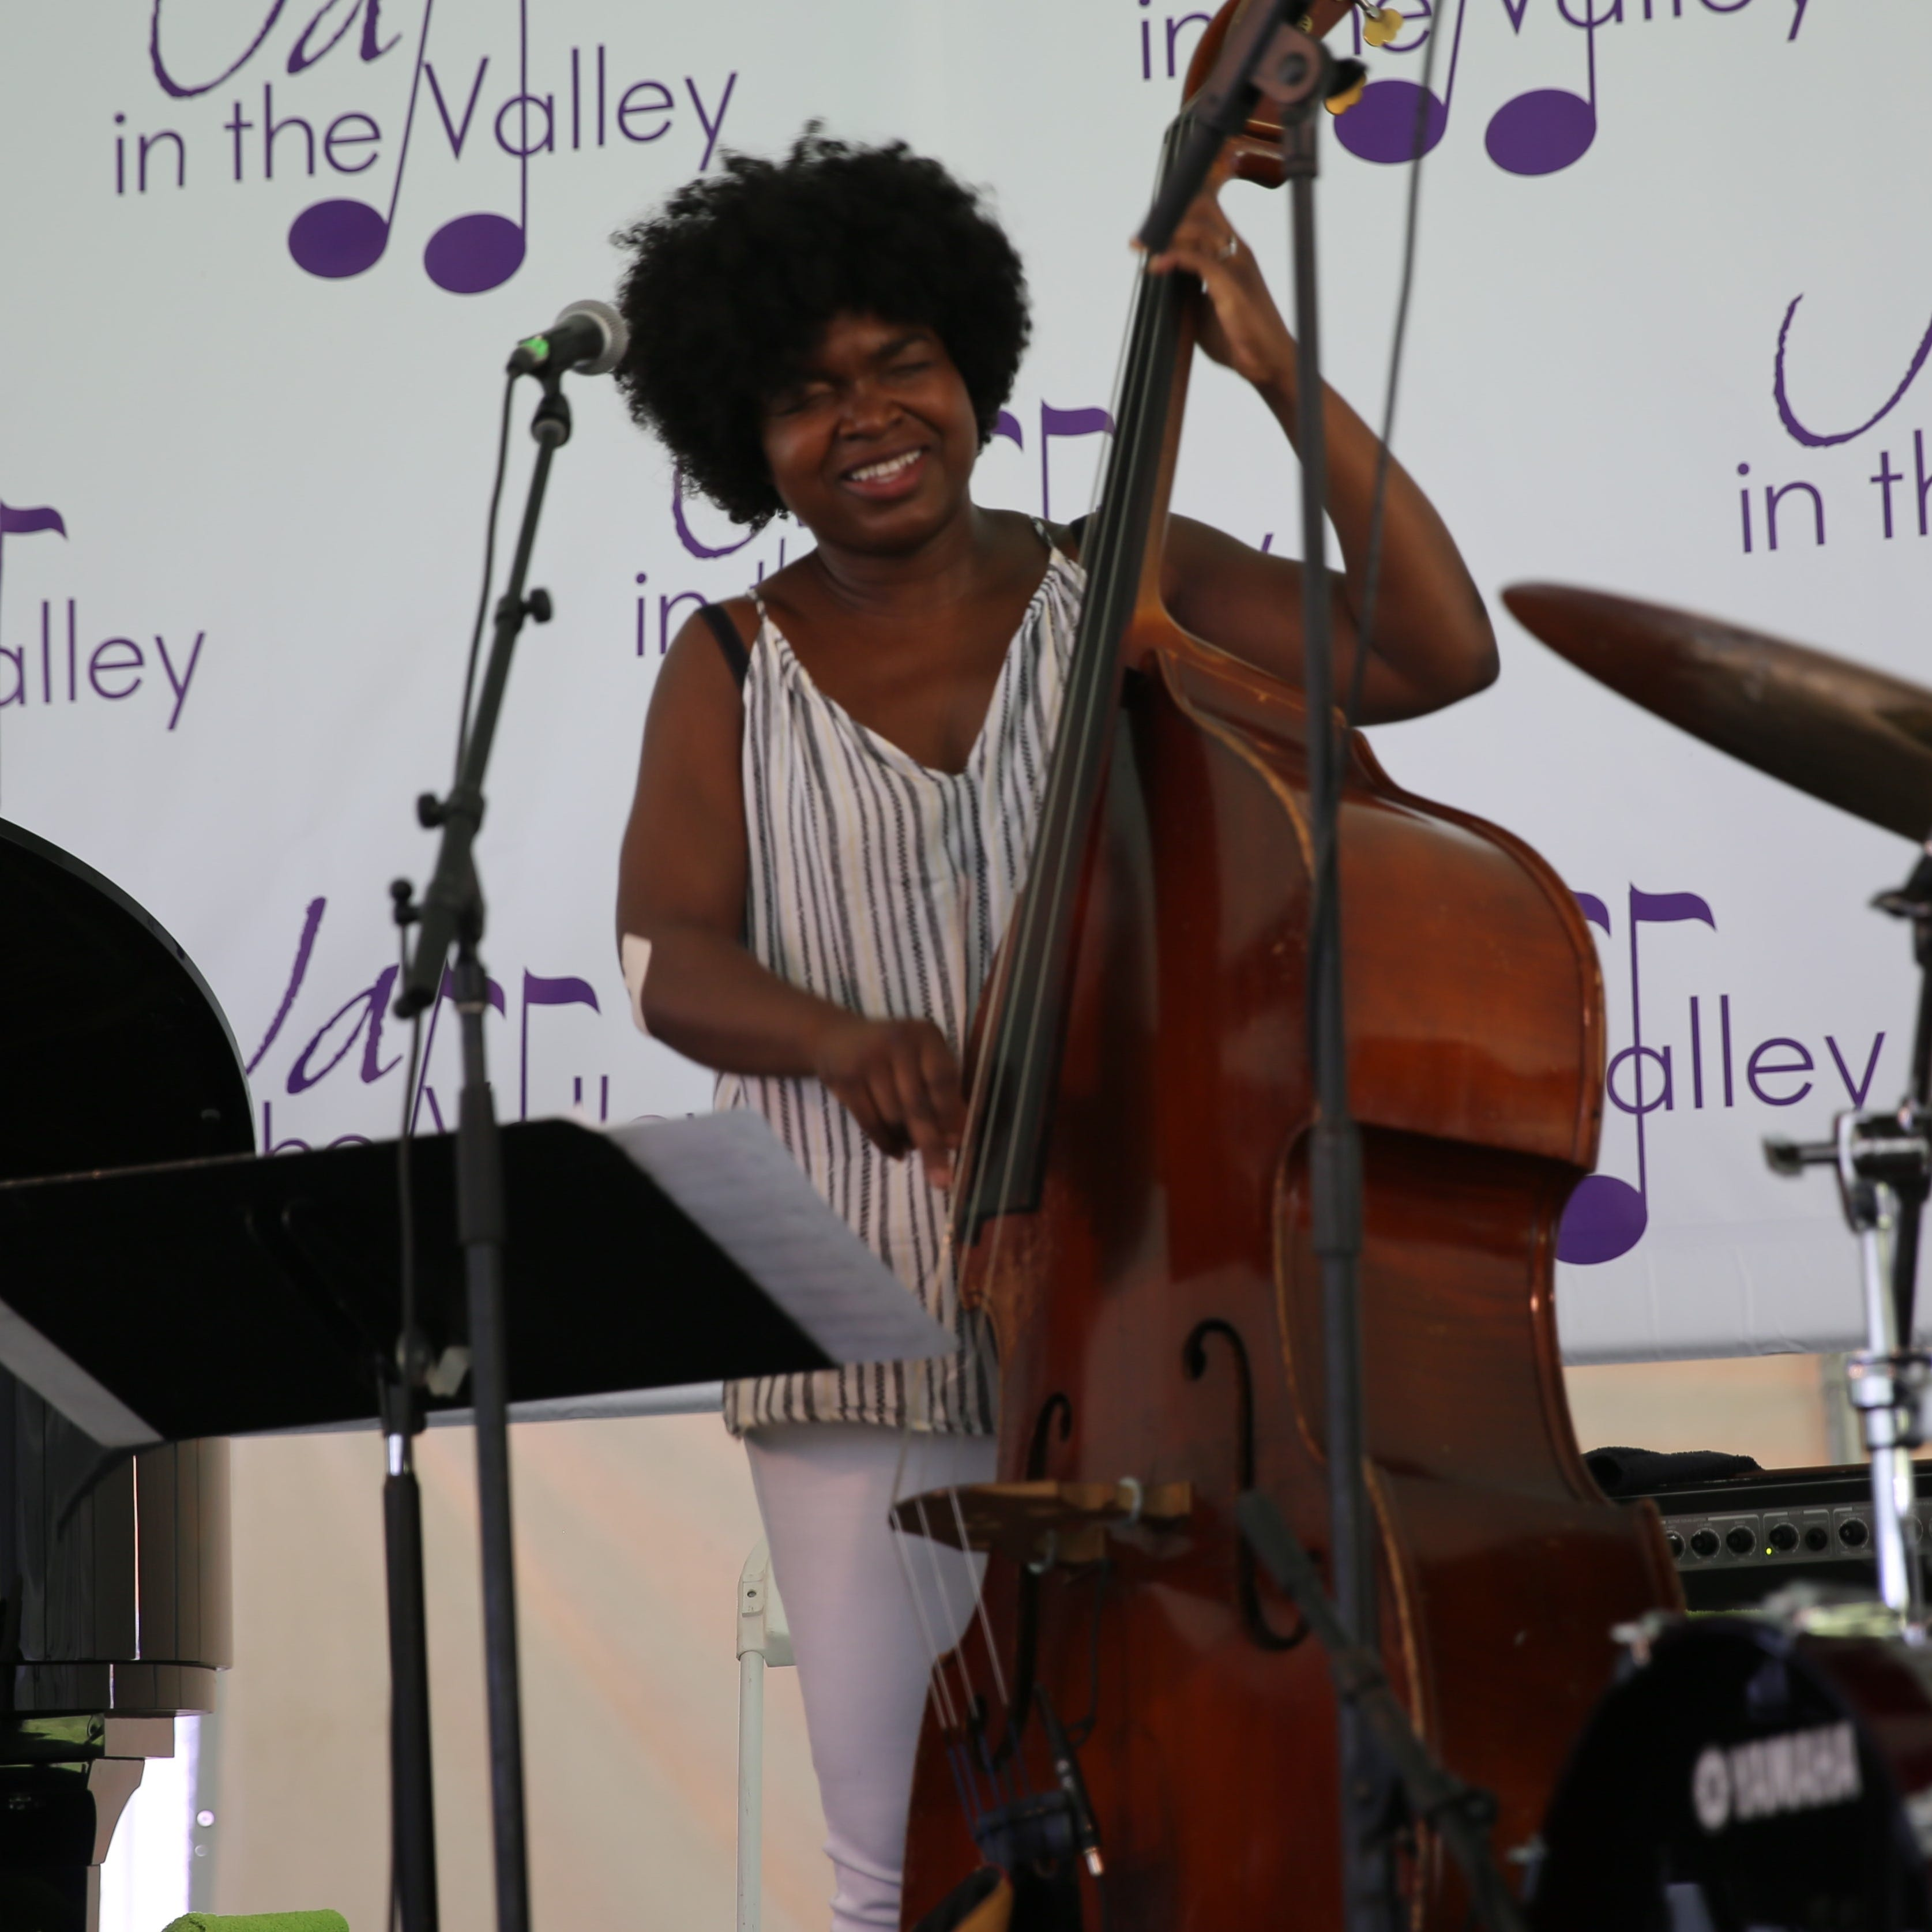 Jazz in the Valley: Hundreds enjoy bands on the Hudson River, celebrate classic genre